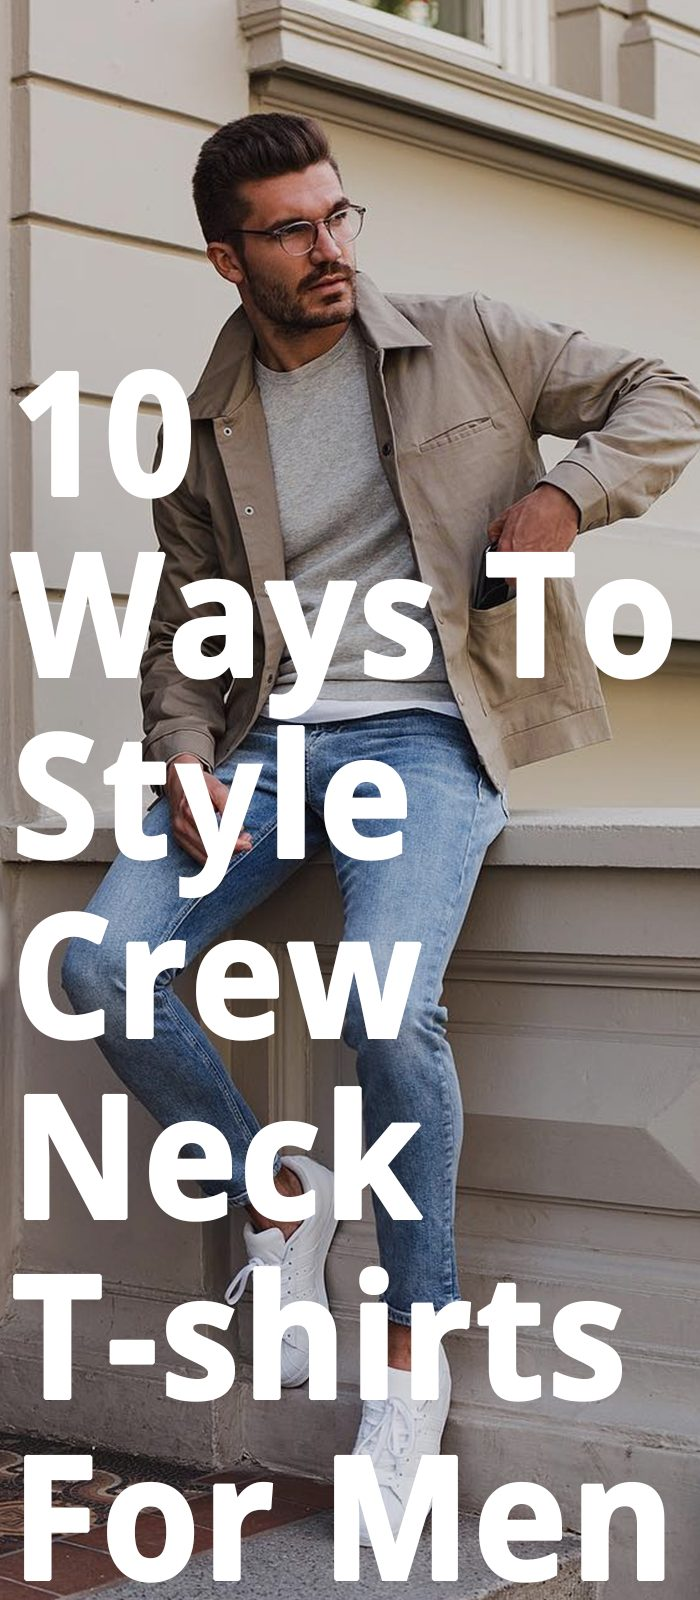 10 Ways To Style Crew Neck T-shirts For Men